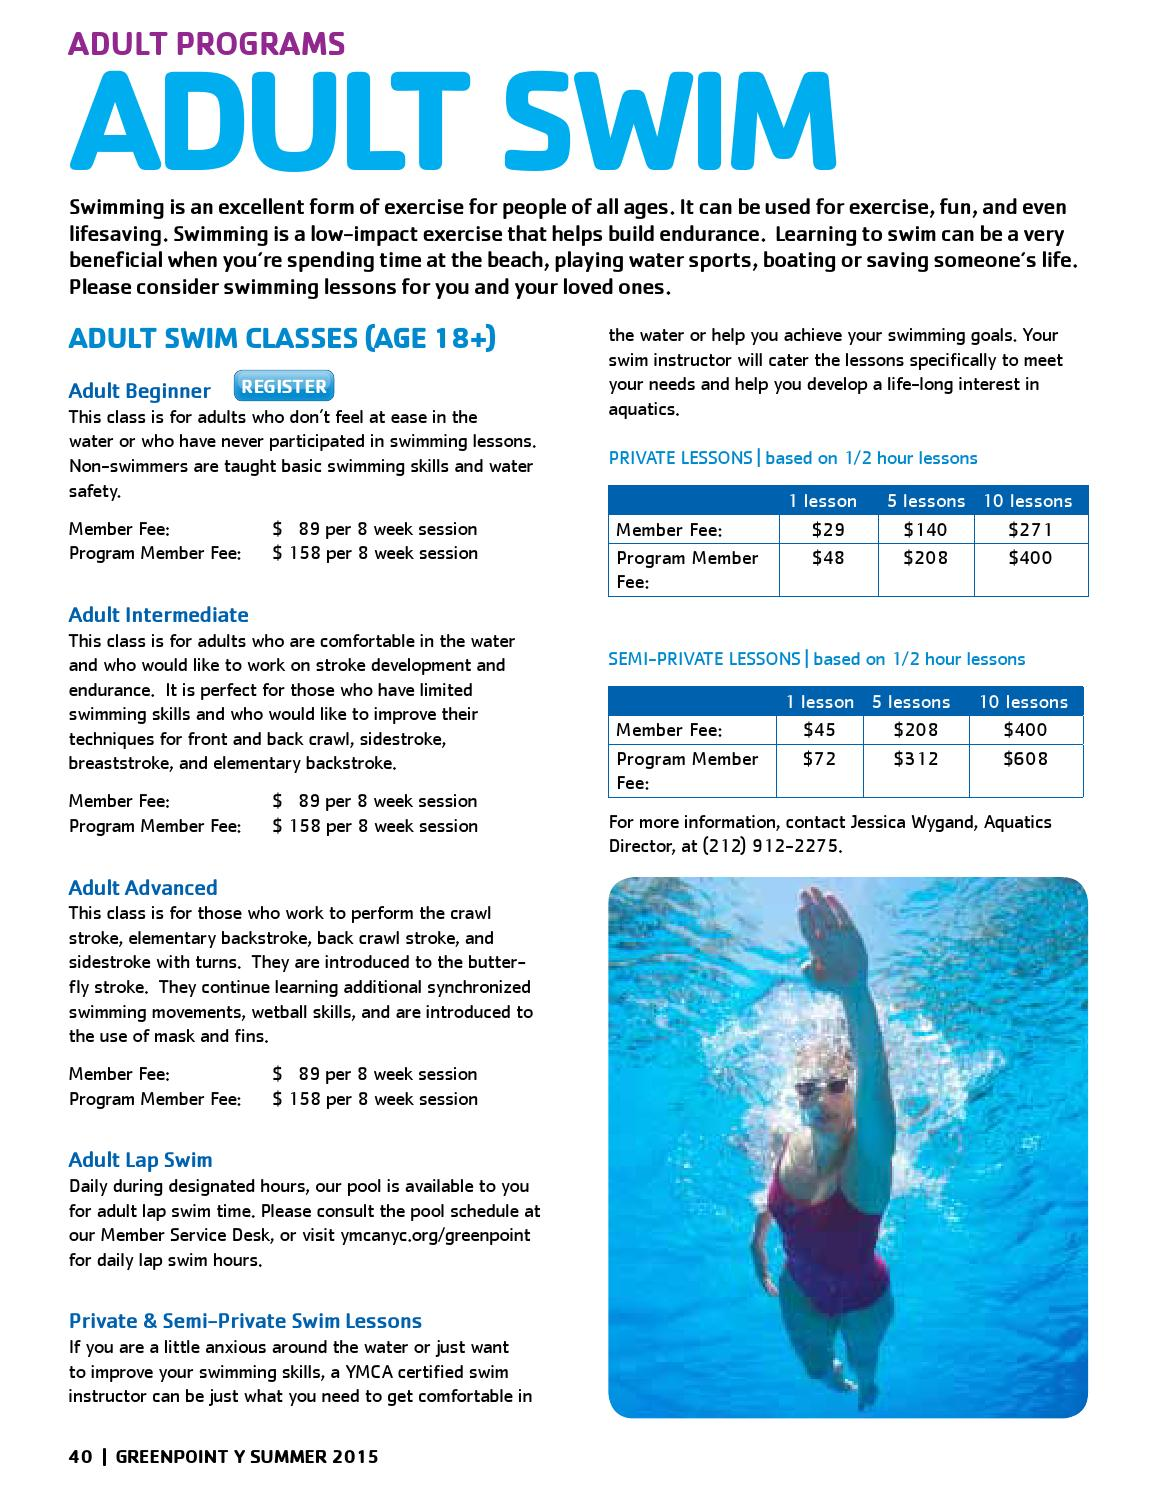 Greenpoint YMCA Summer 2015 Interactive Program Guide